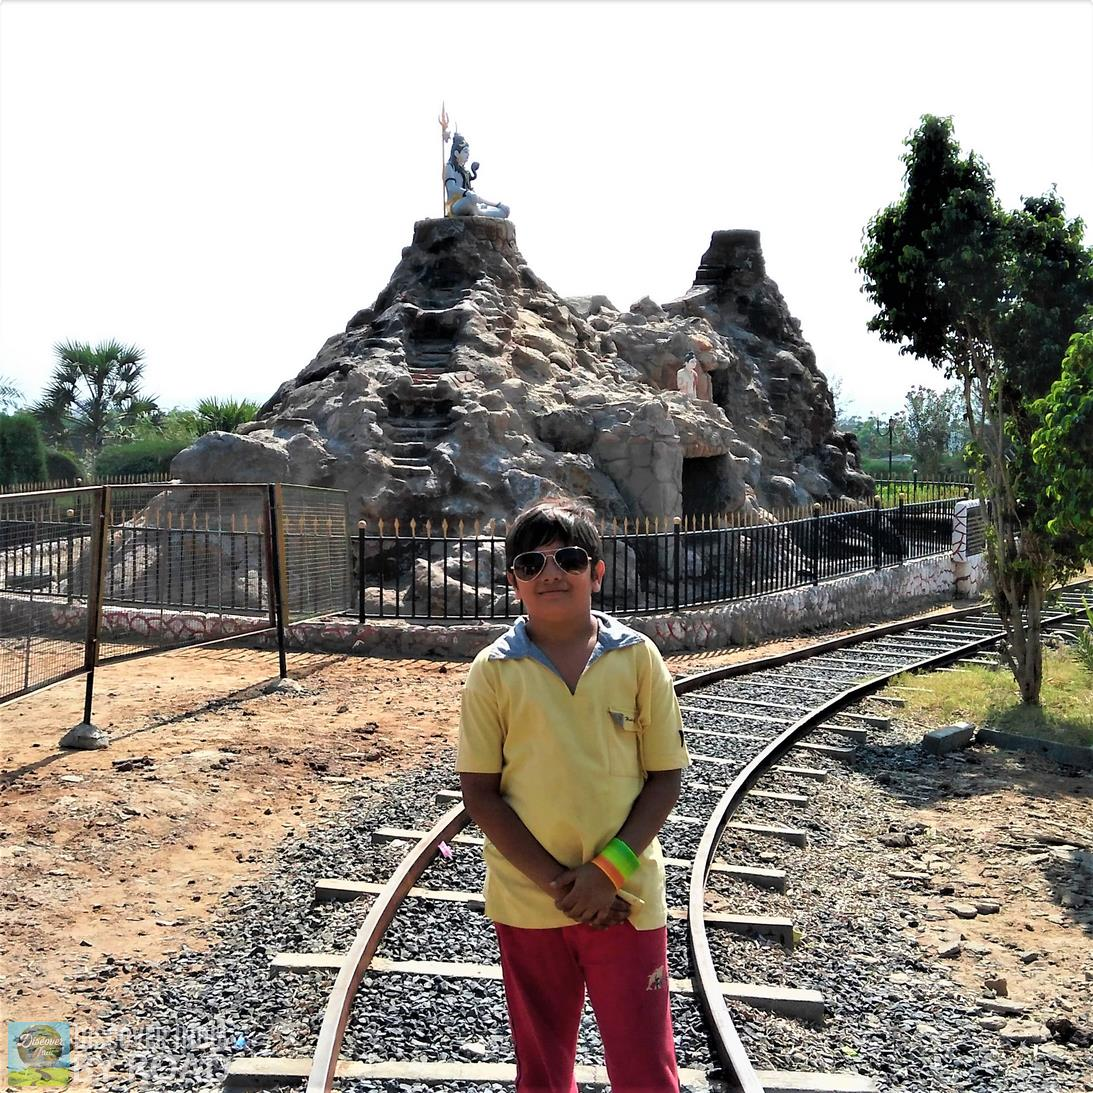 Toy Train track with Shiva statue in background at hill garden bhuj